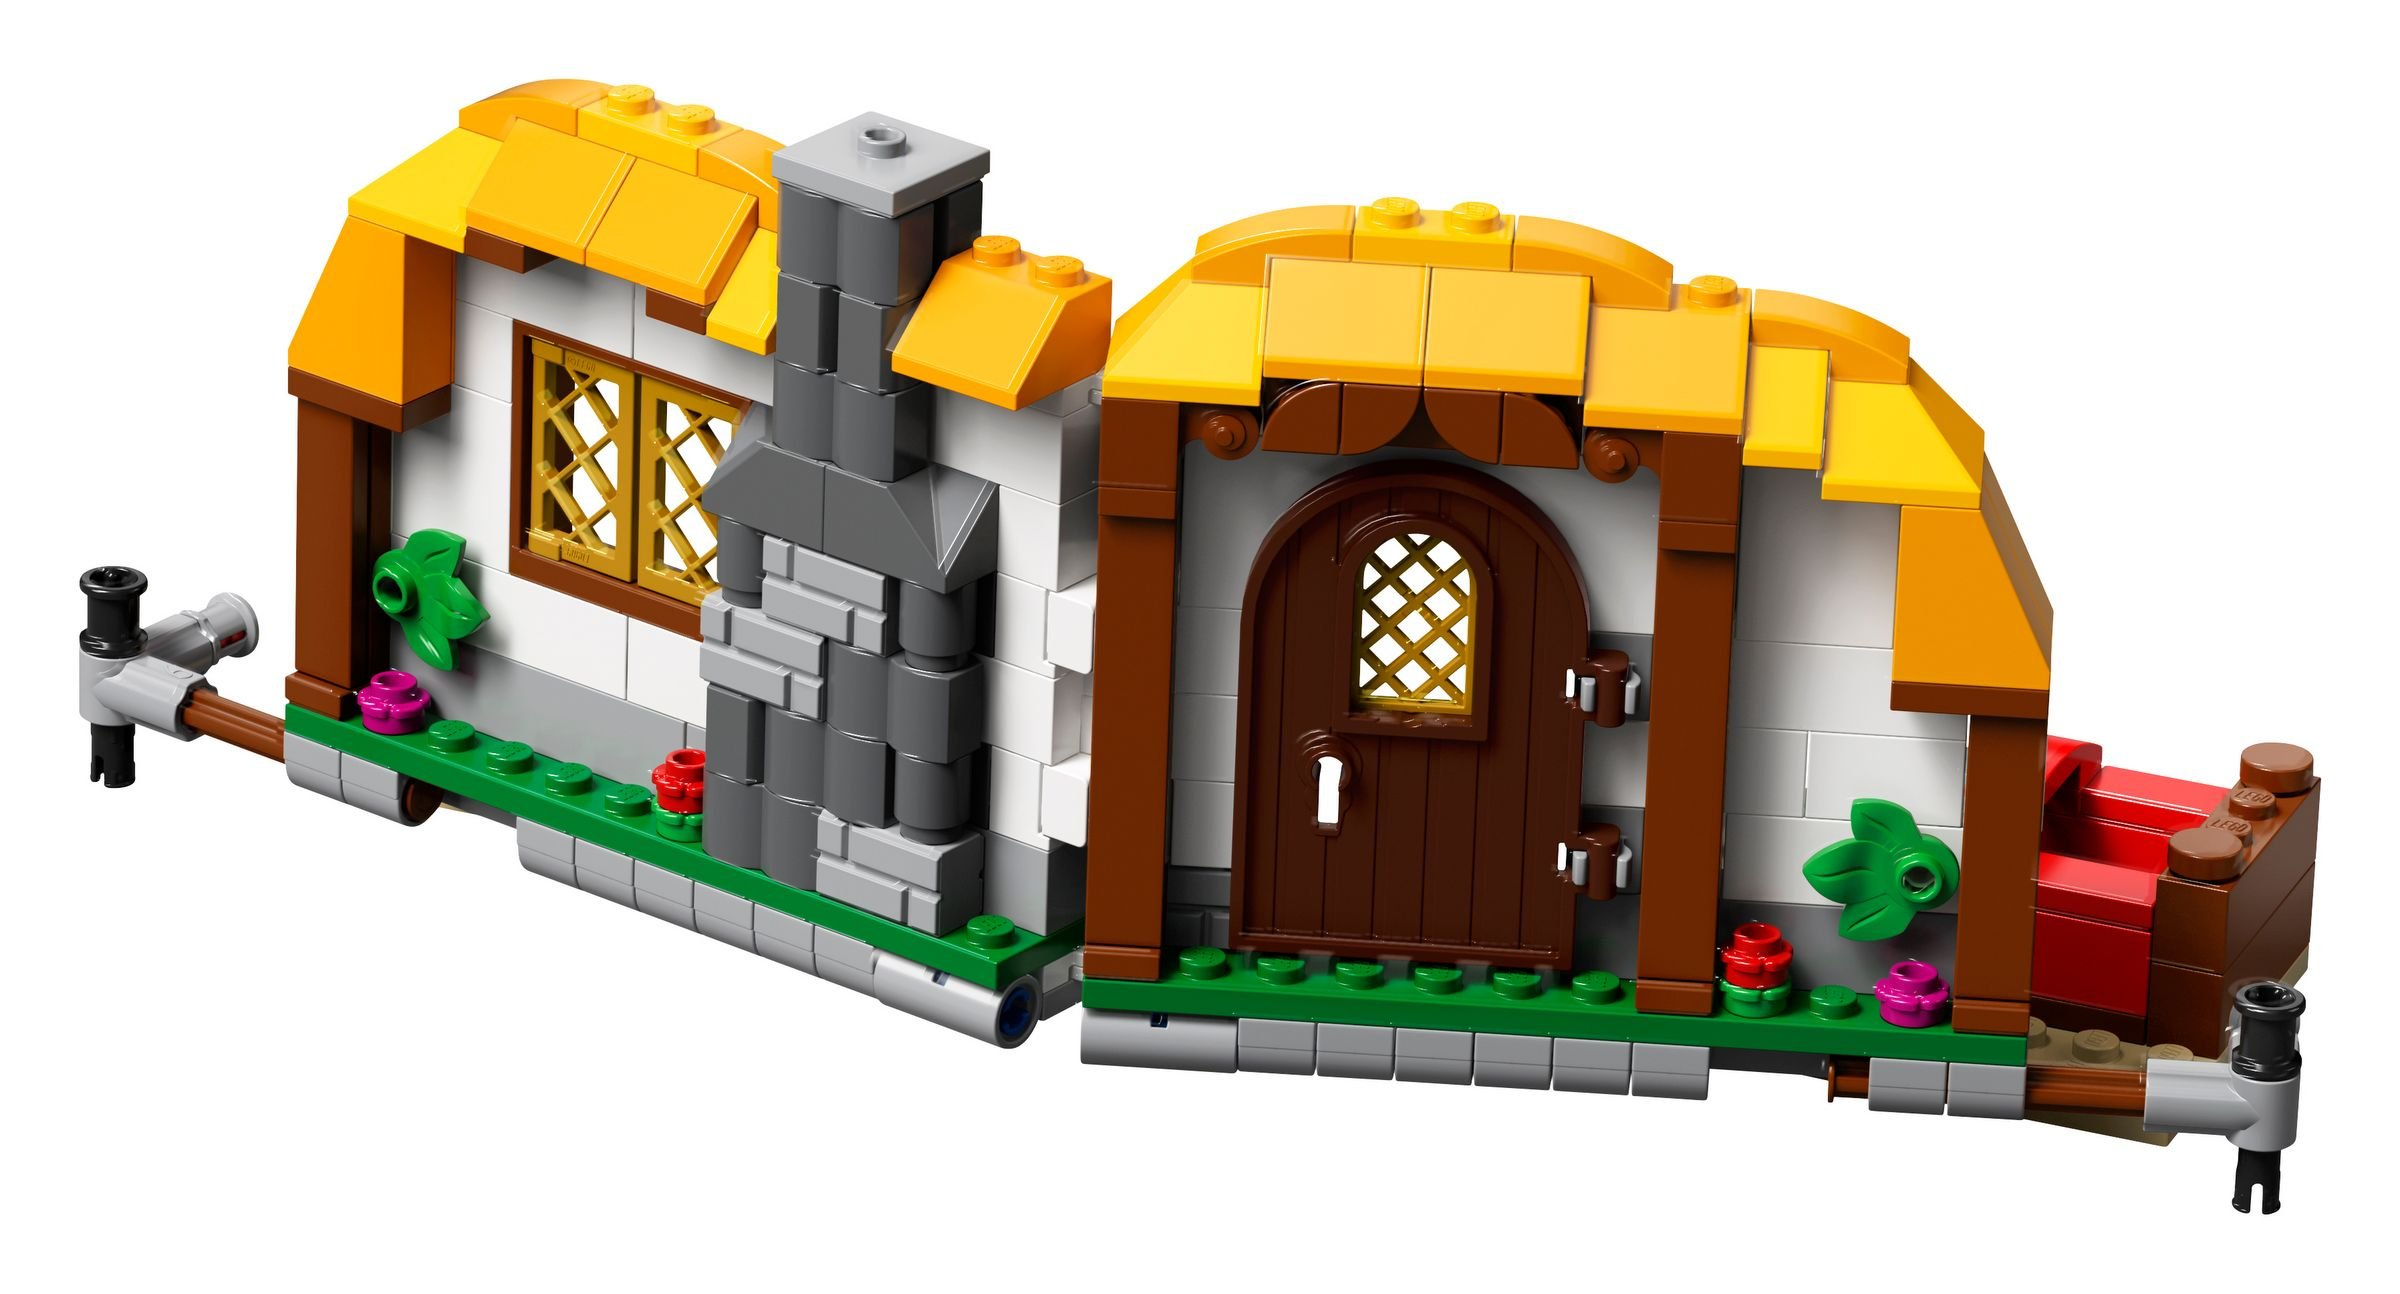 LEGO Ideas 21315 Pop-Up-Buch LEGO_21315_alt6.jpg